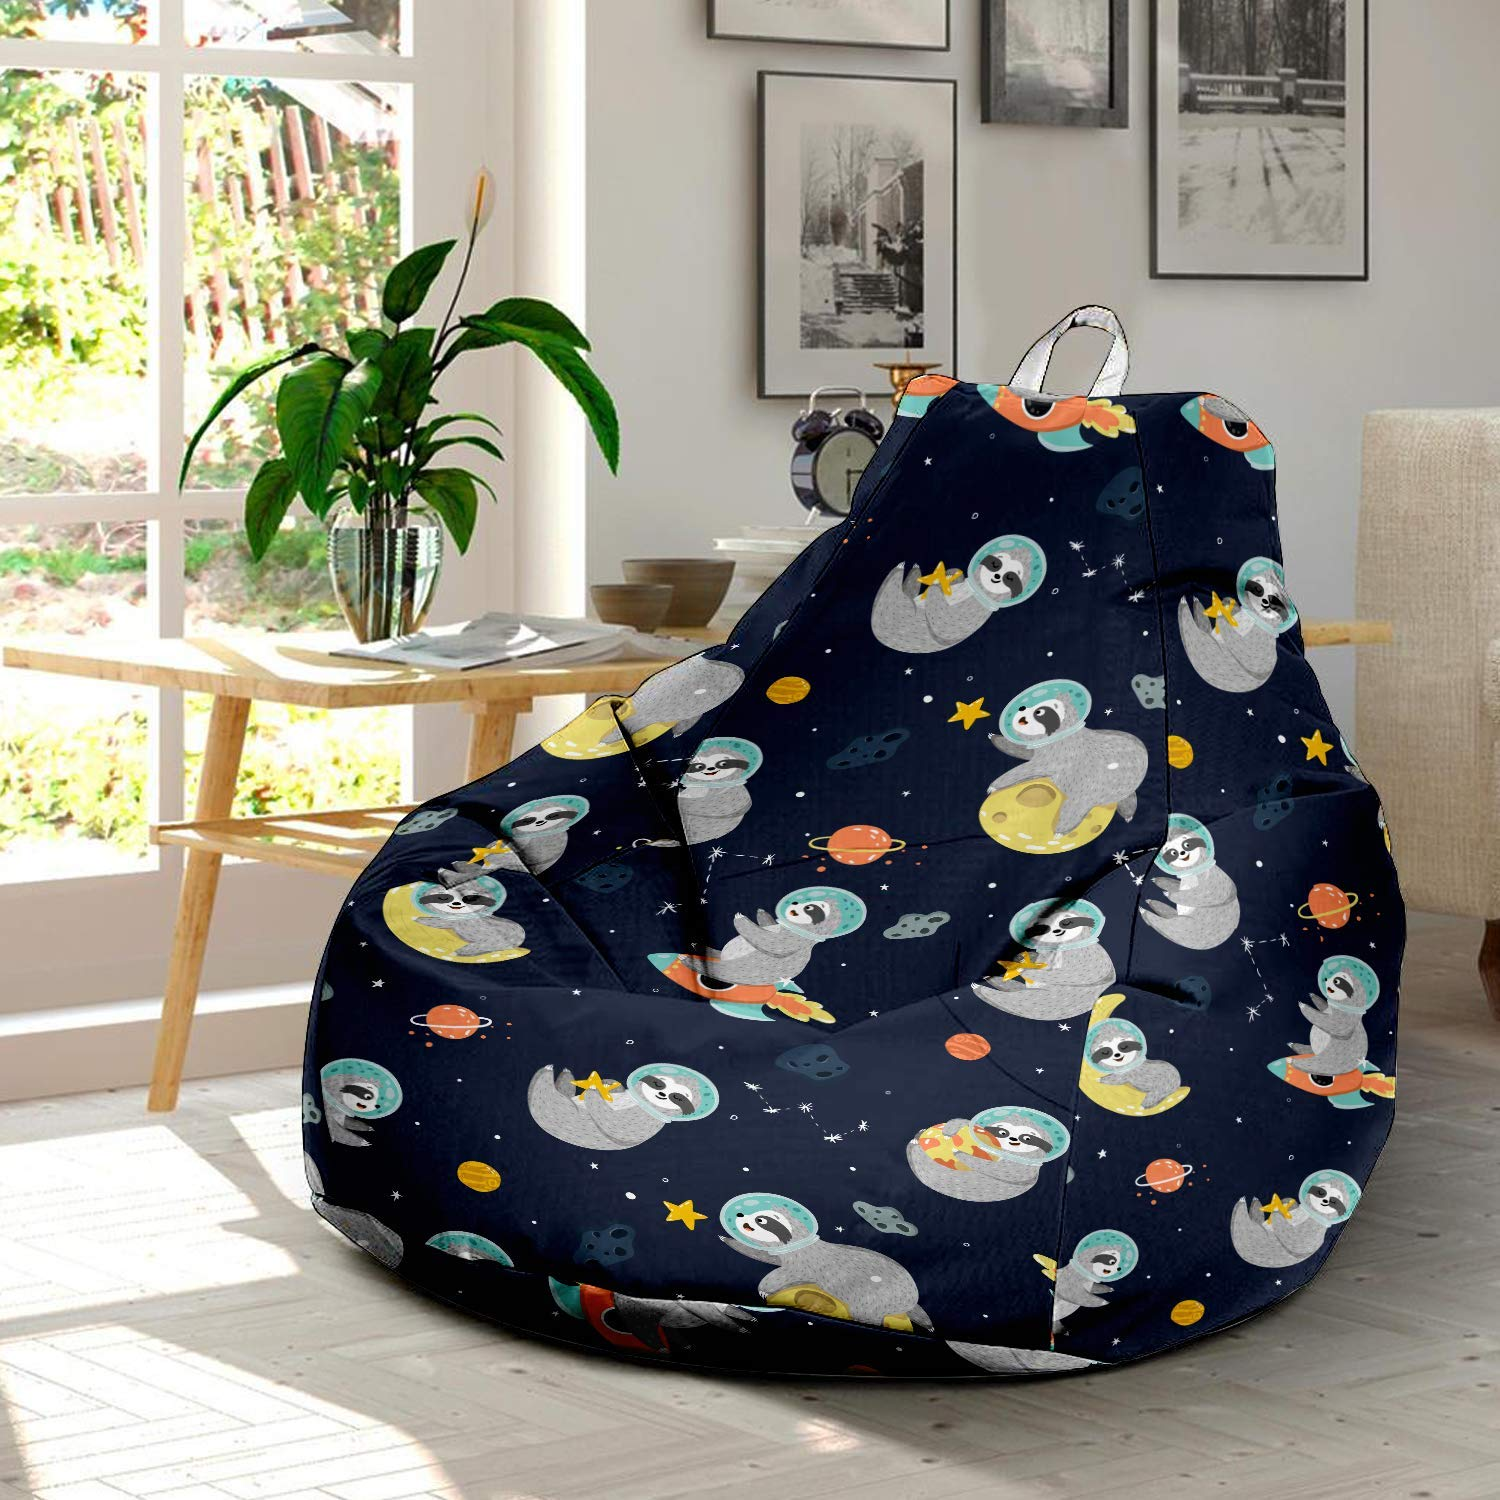 Swell Amazon Com Sloth Ultra Soft Bean Bags Chairs Beanless Bag Dailytribune Chair Design For Home Dailytribuneorg